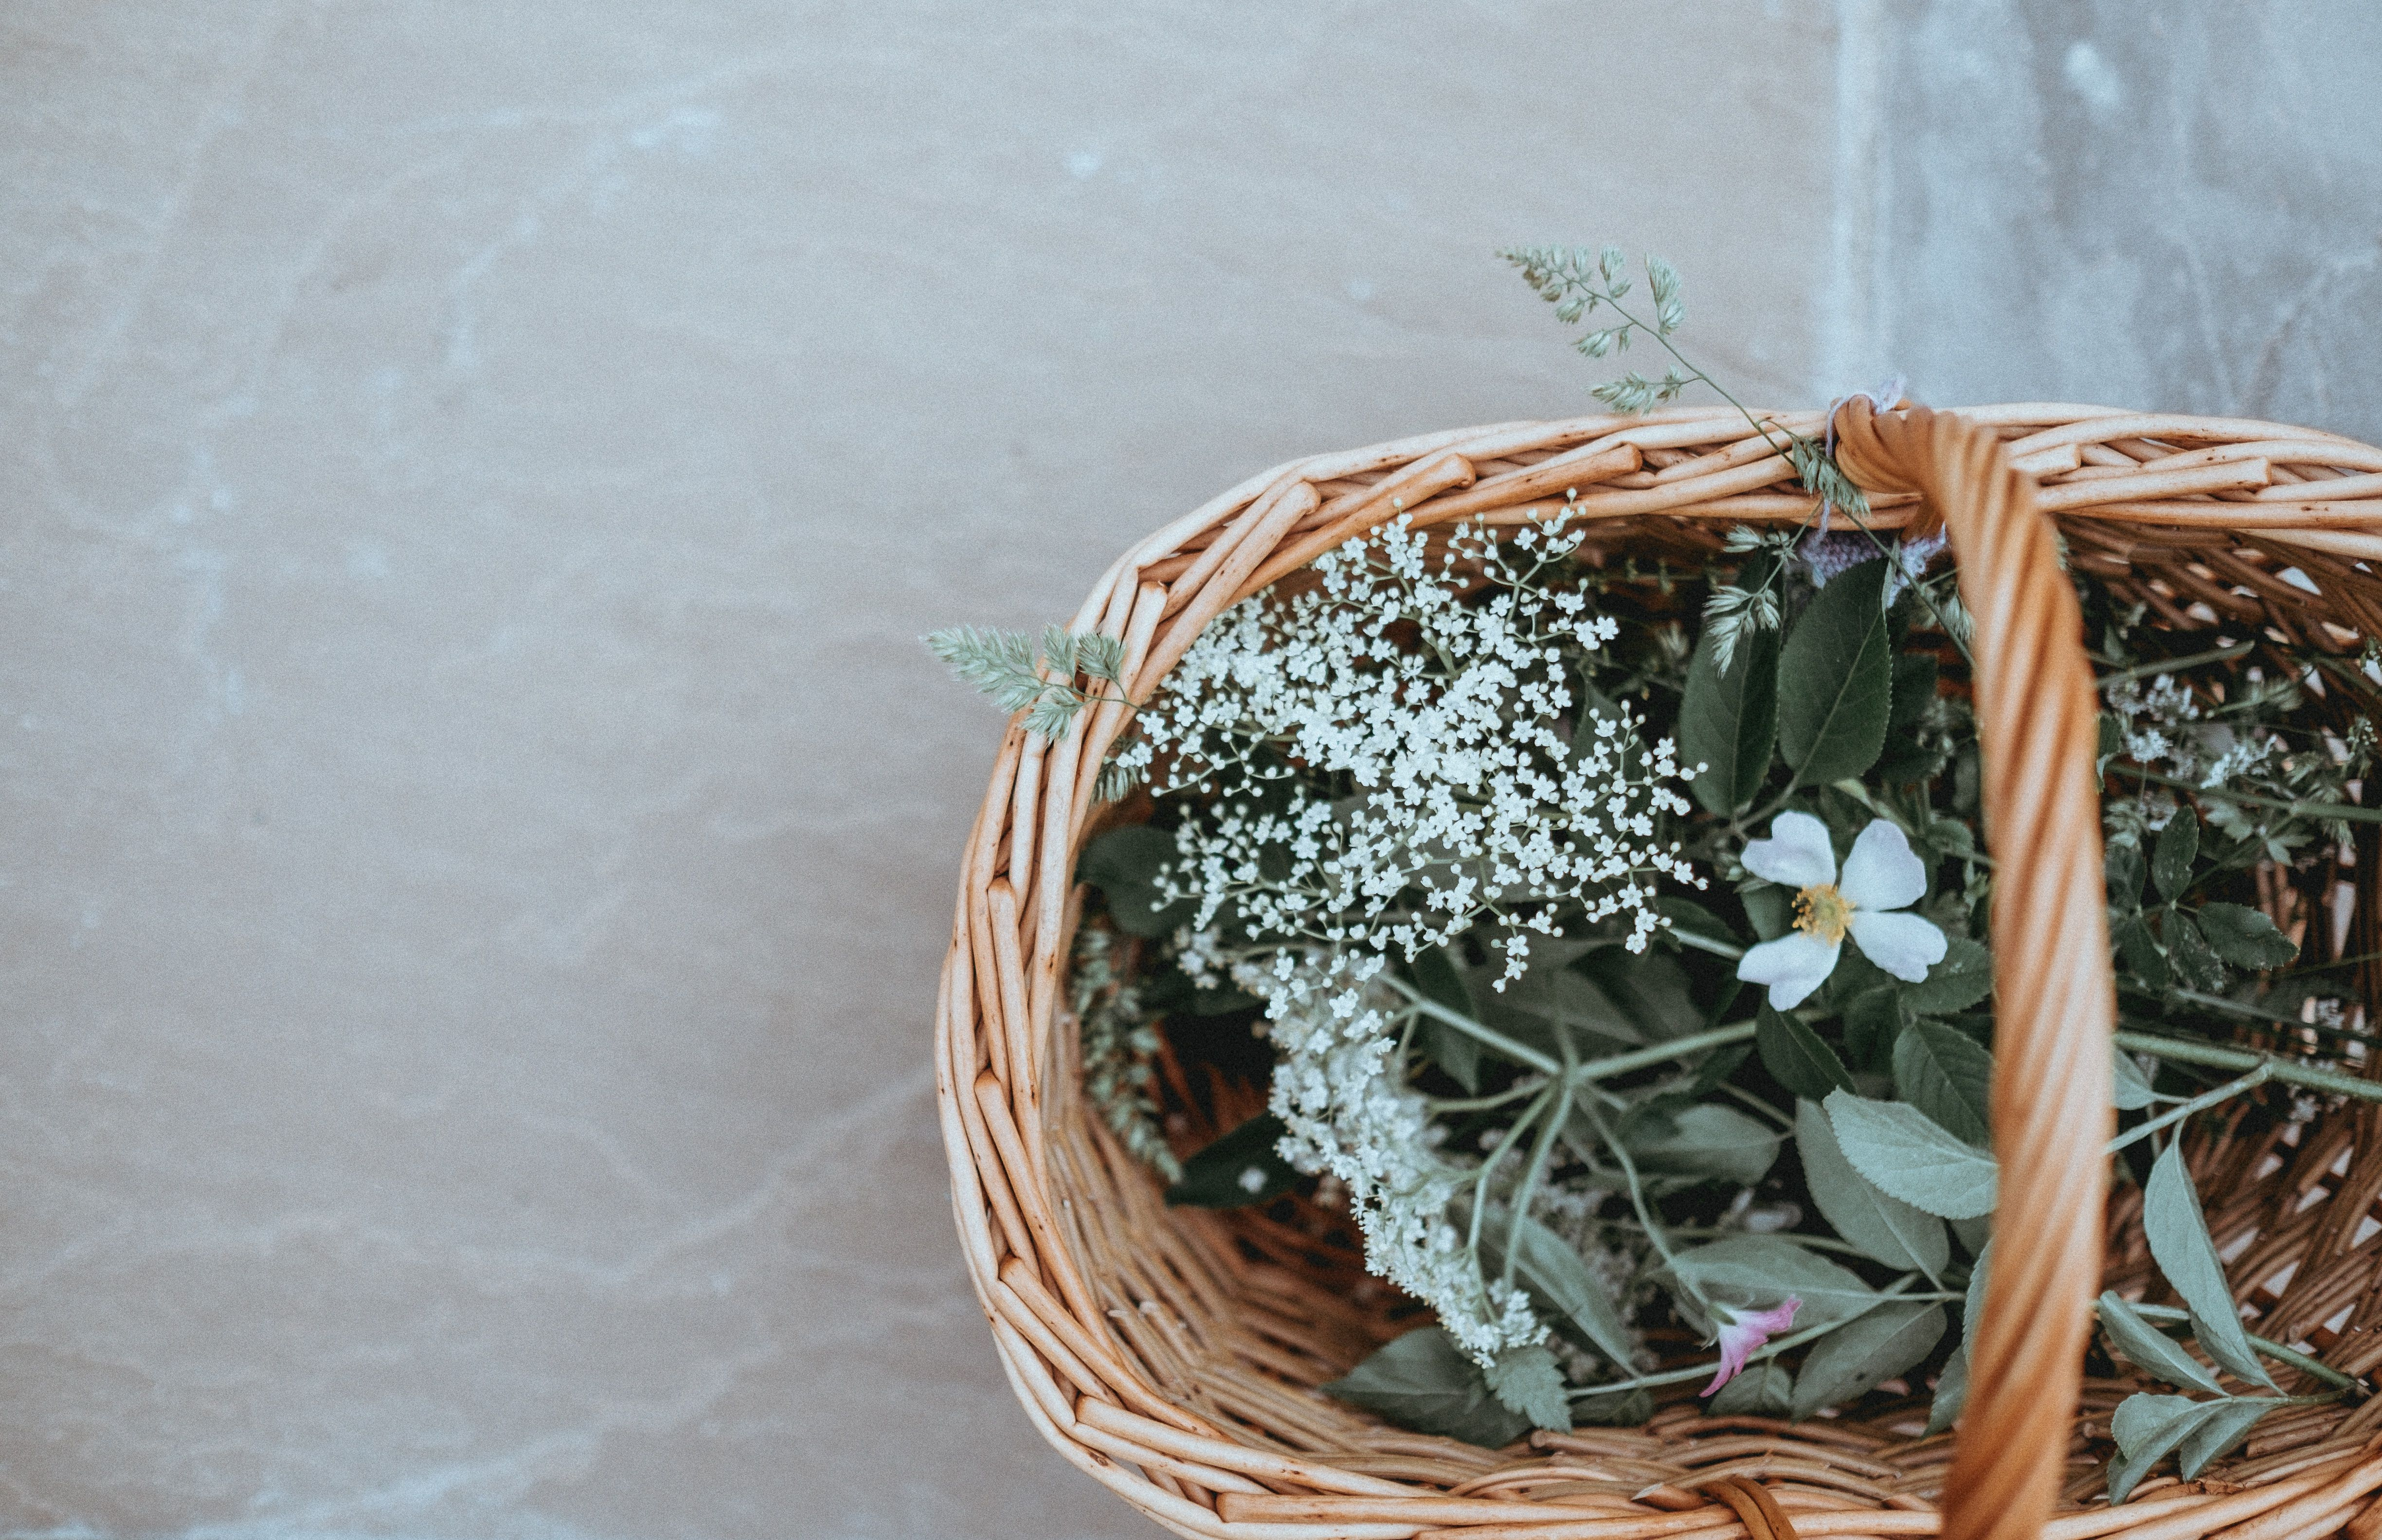 Basket flowers Grass (With images) Grass wallpaper